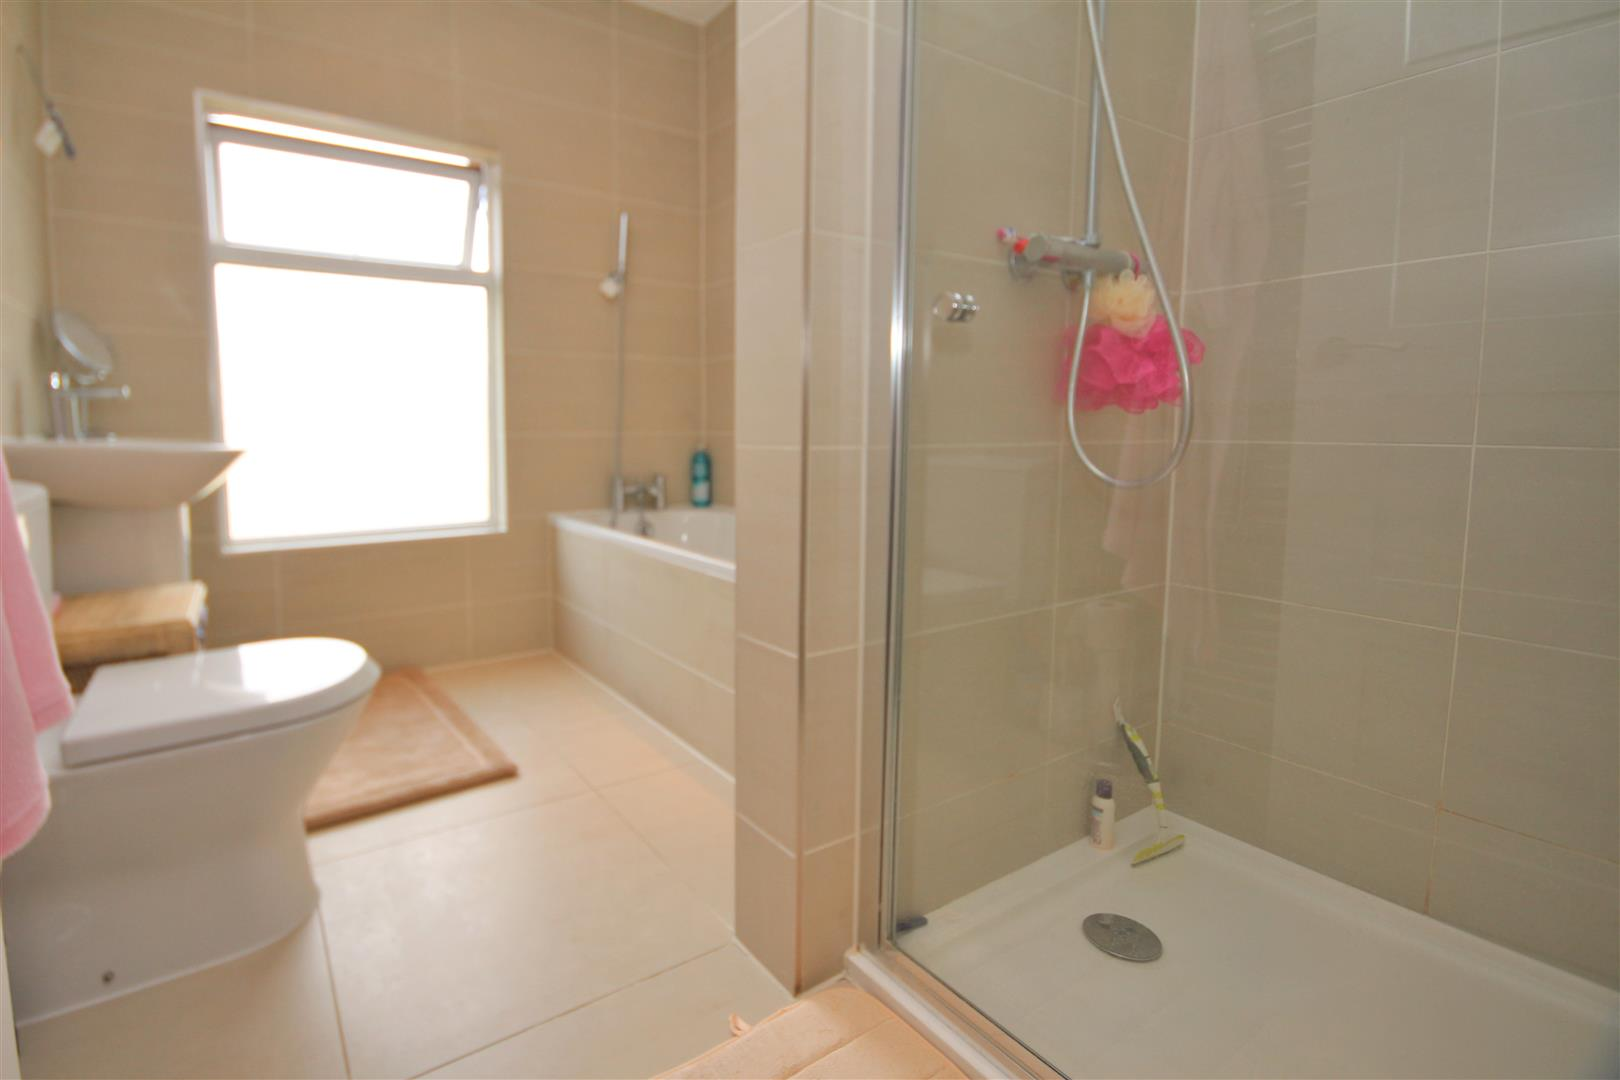 2 bed to rent - (Property Image 4)